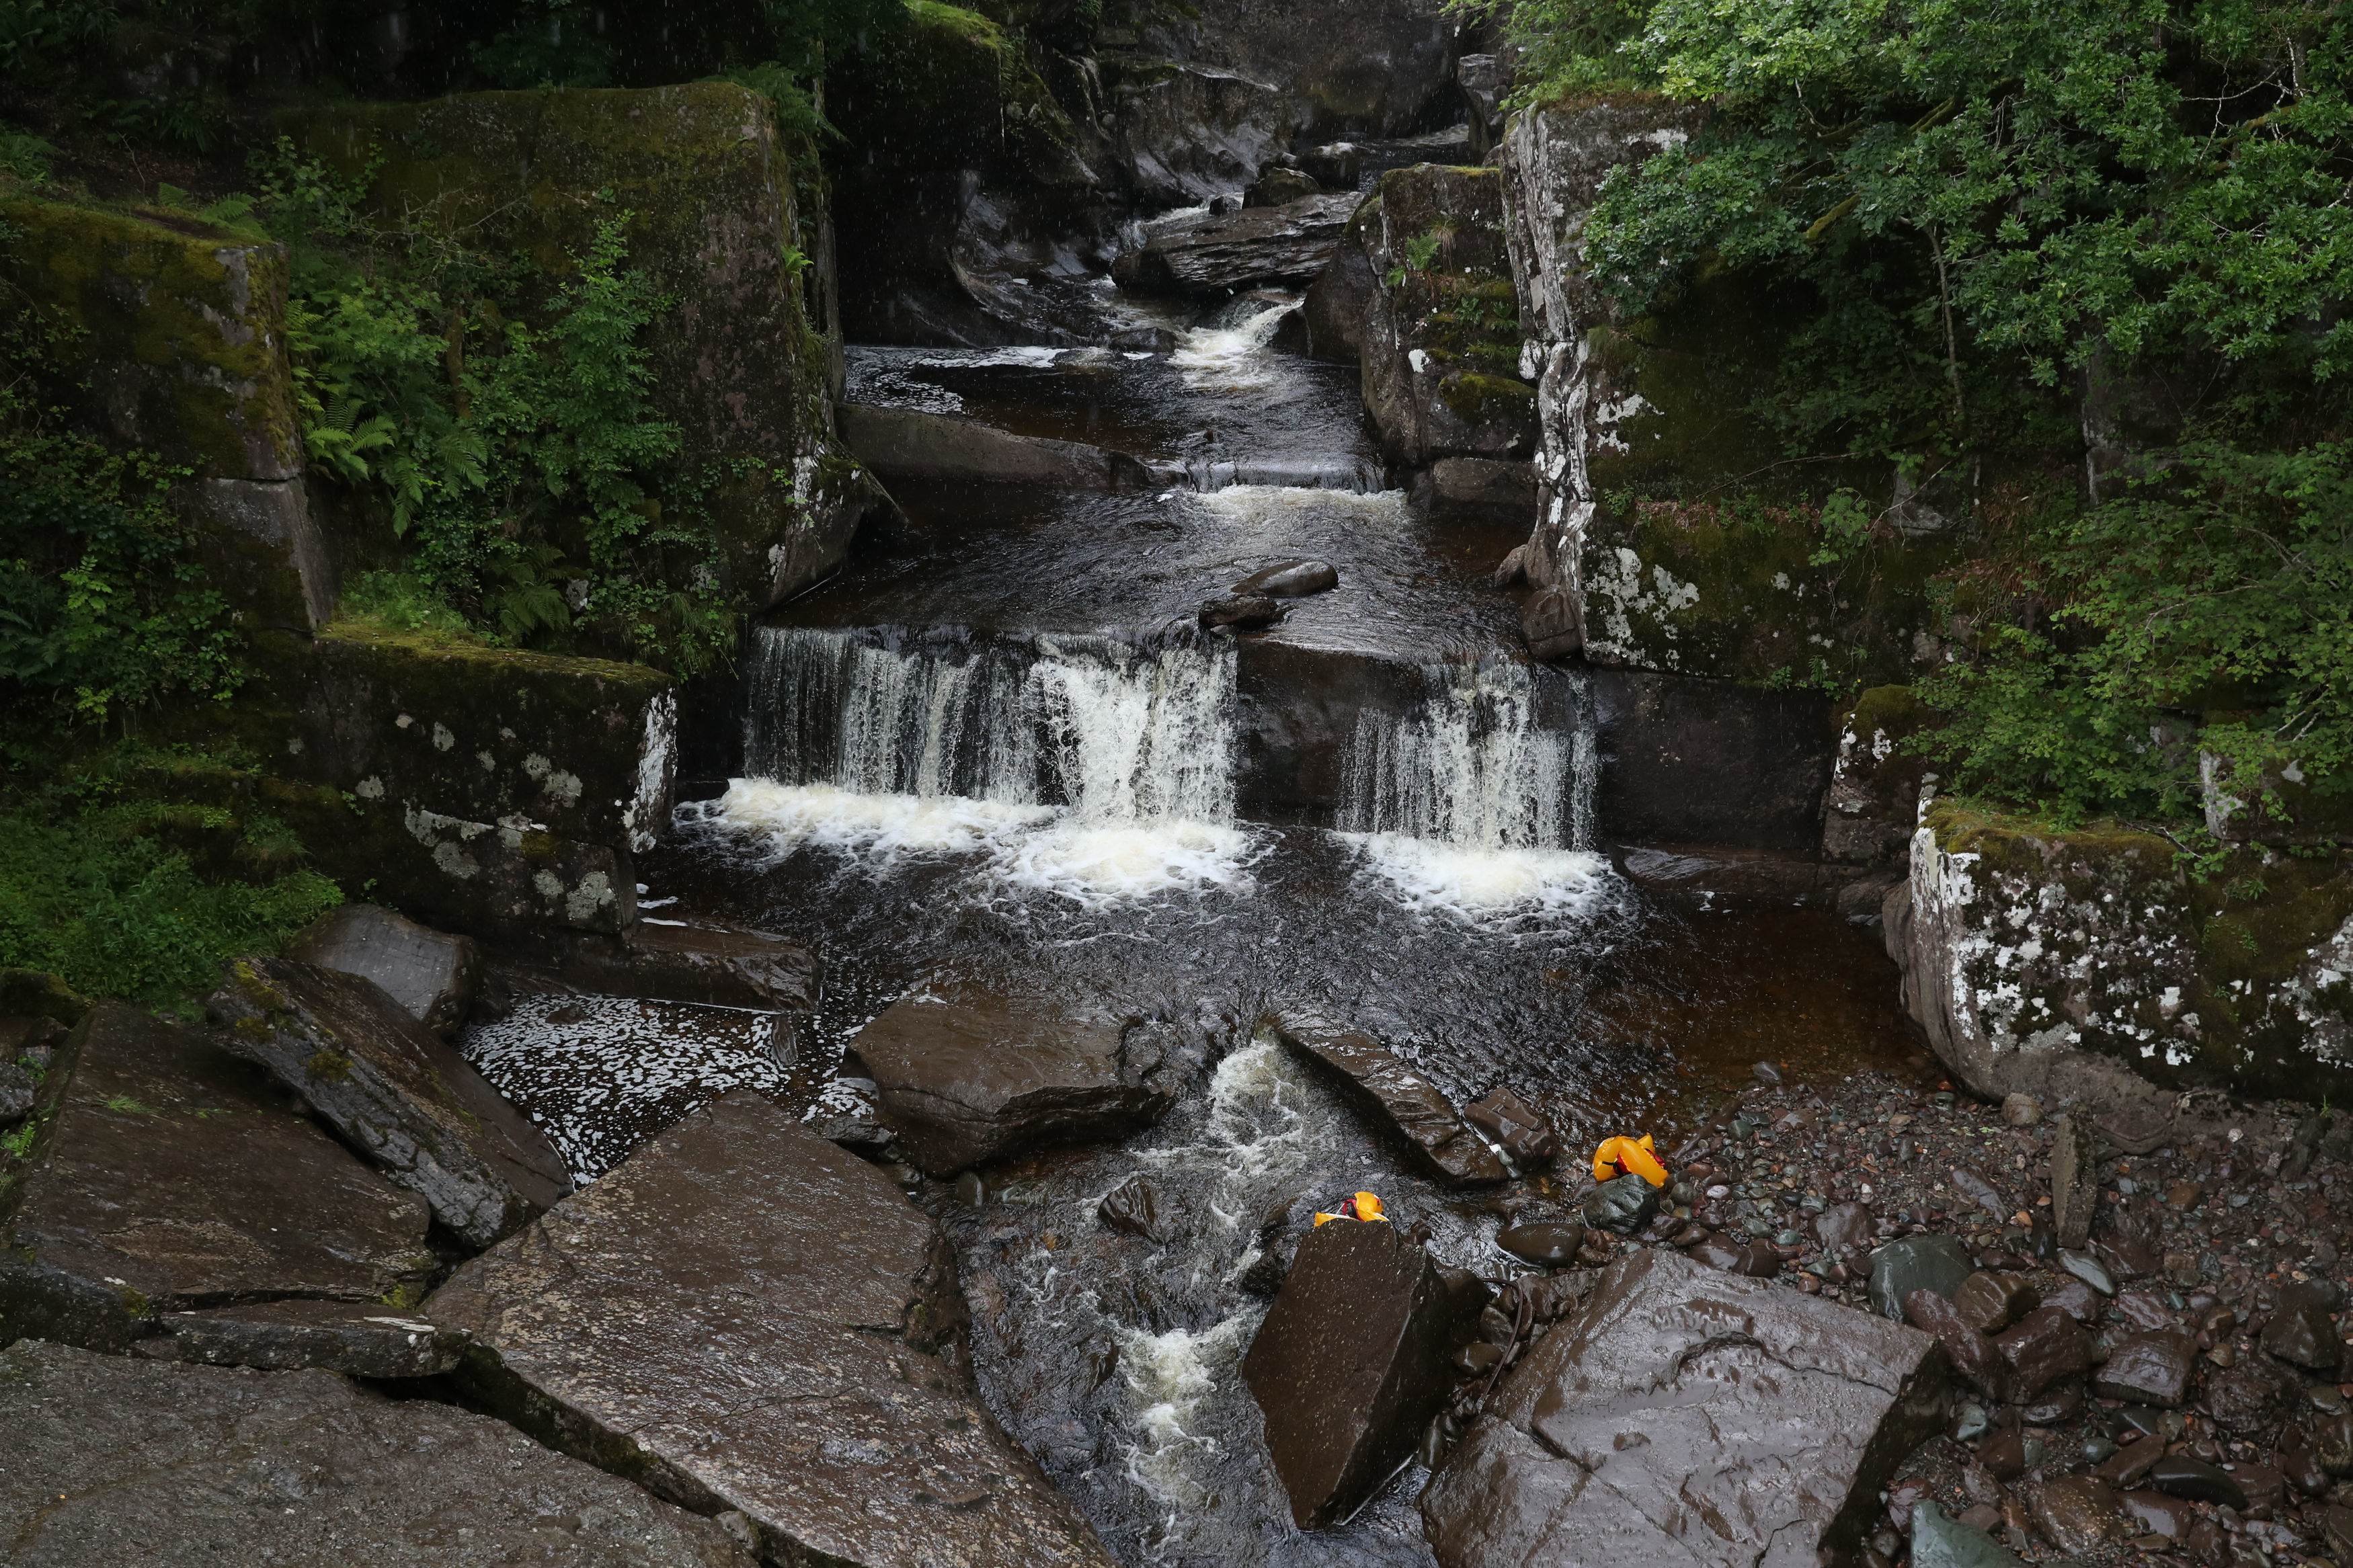 Buoyancy aids in the water at Bracklinn Falls, near Callander, Perthshire, where a search by the emergency services was carried out.